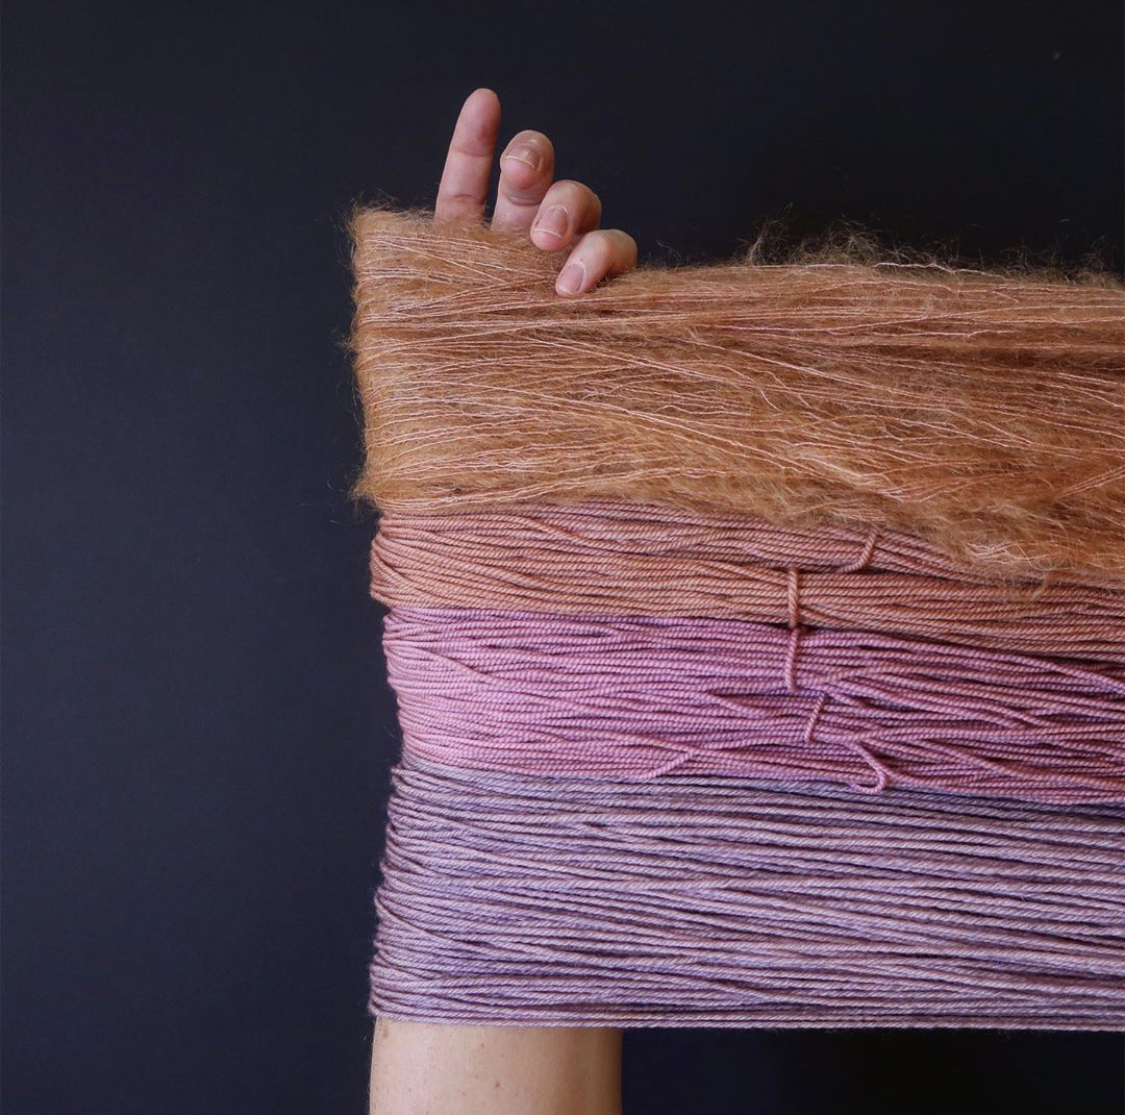 Four hanks of varying shades of pink yarn are stretched across Tayler's arm; Photo by Tayler Earl of Fiber for the People®